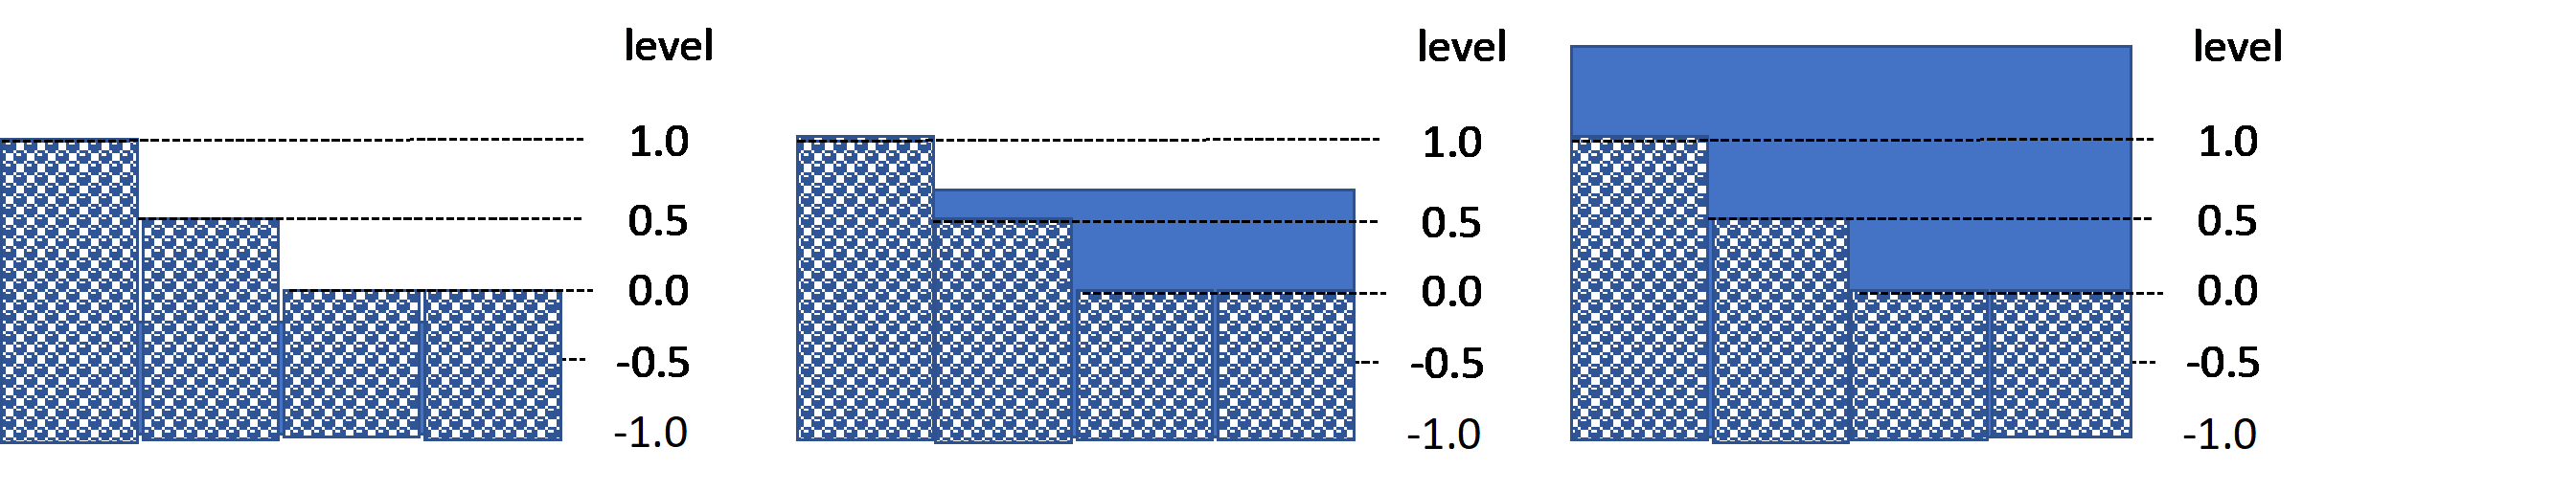 Sketch of interflow layer for, form left to right, Part I, II and III